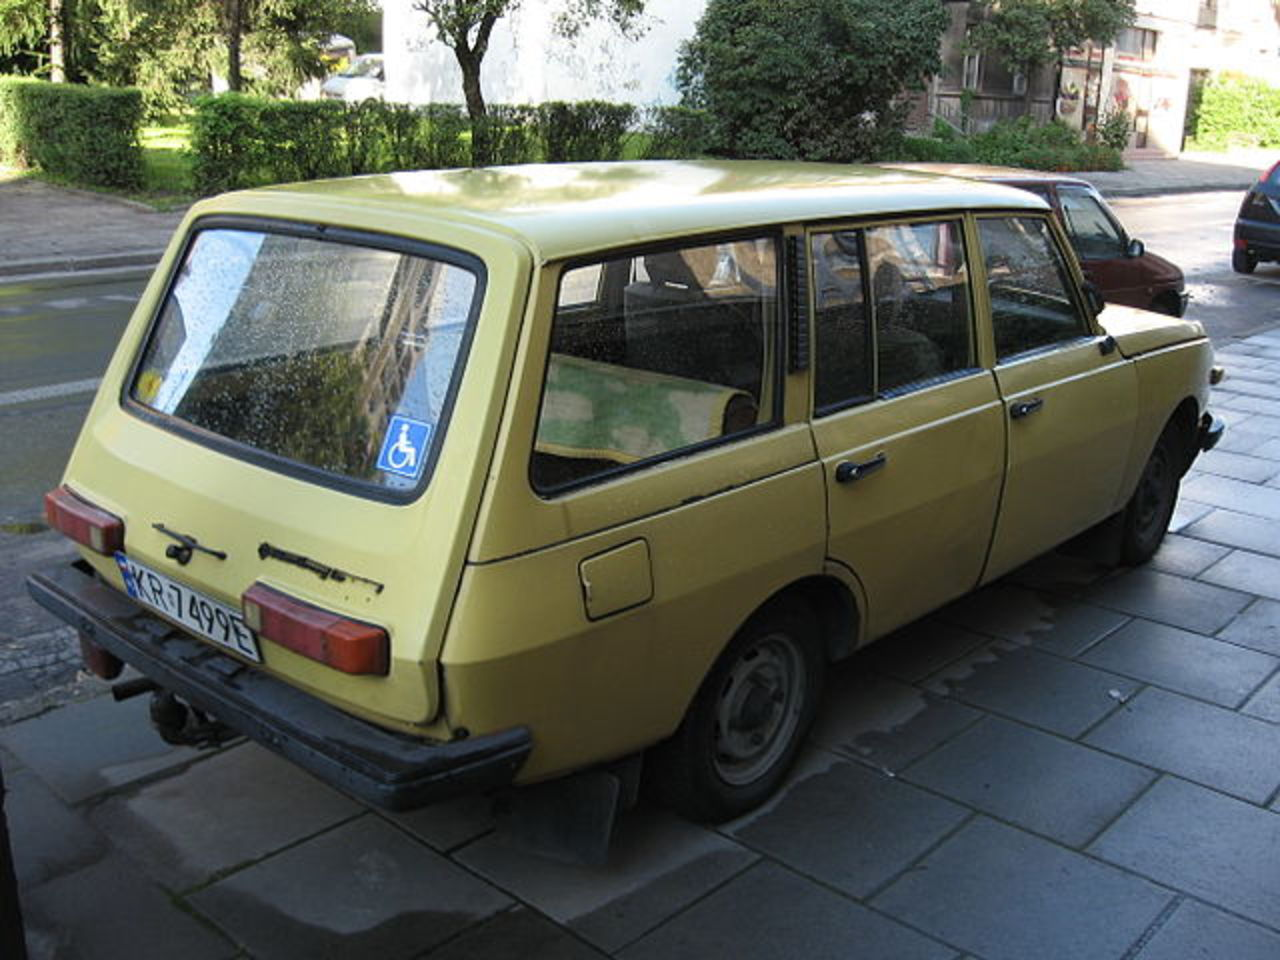 Wartburg 353 Tourist Wagon: Photo #